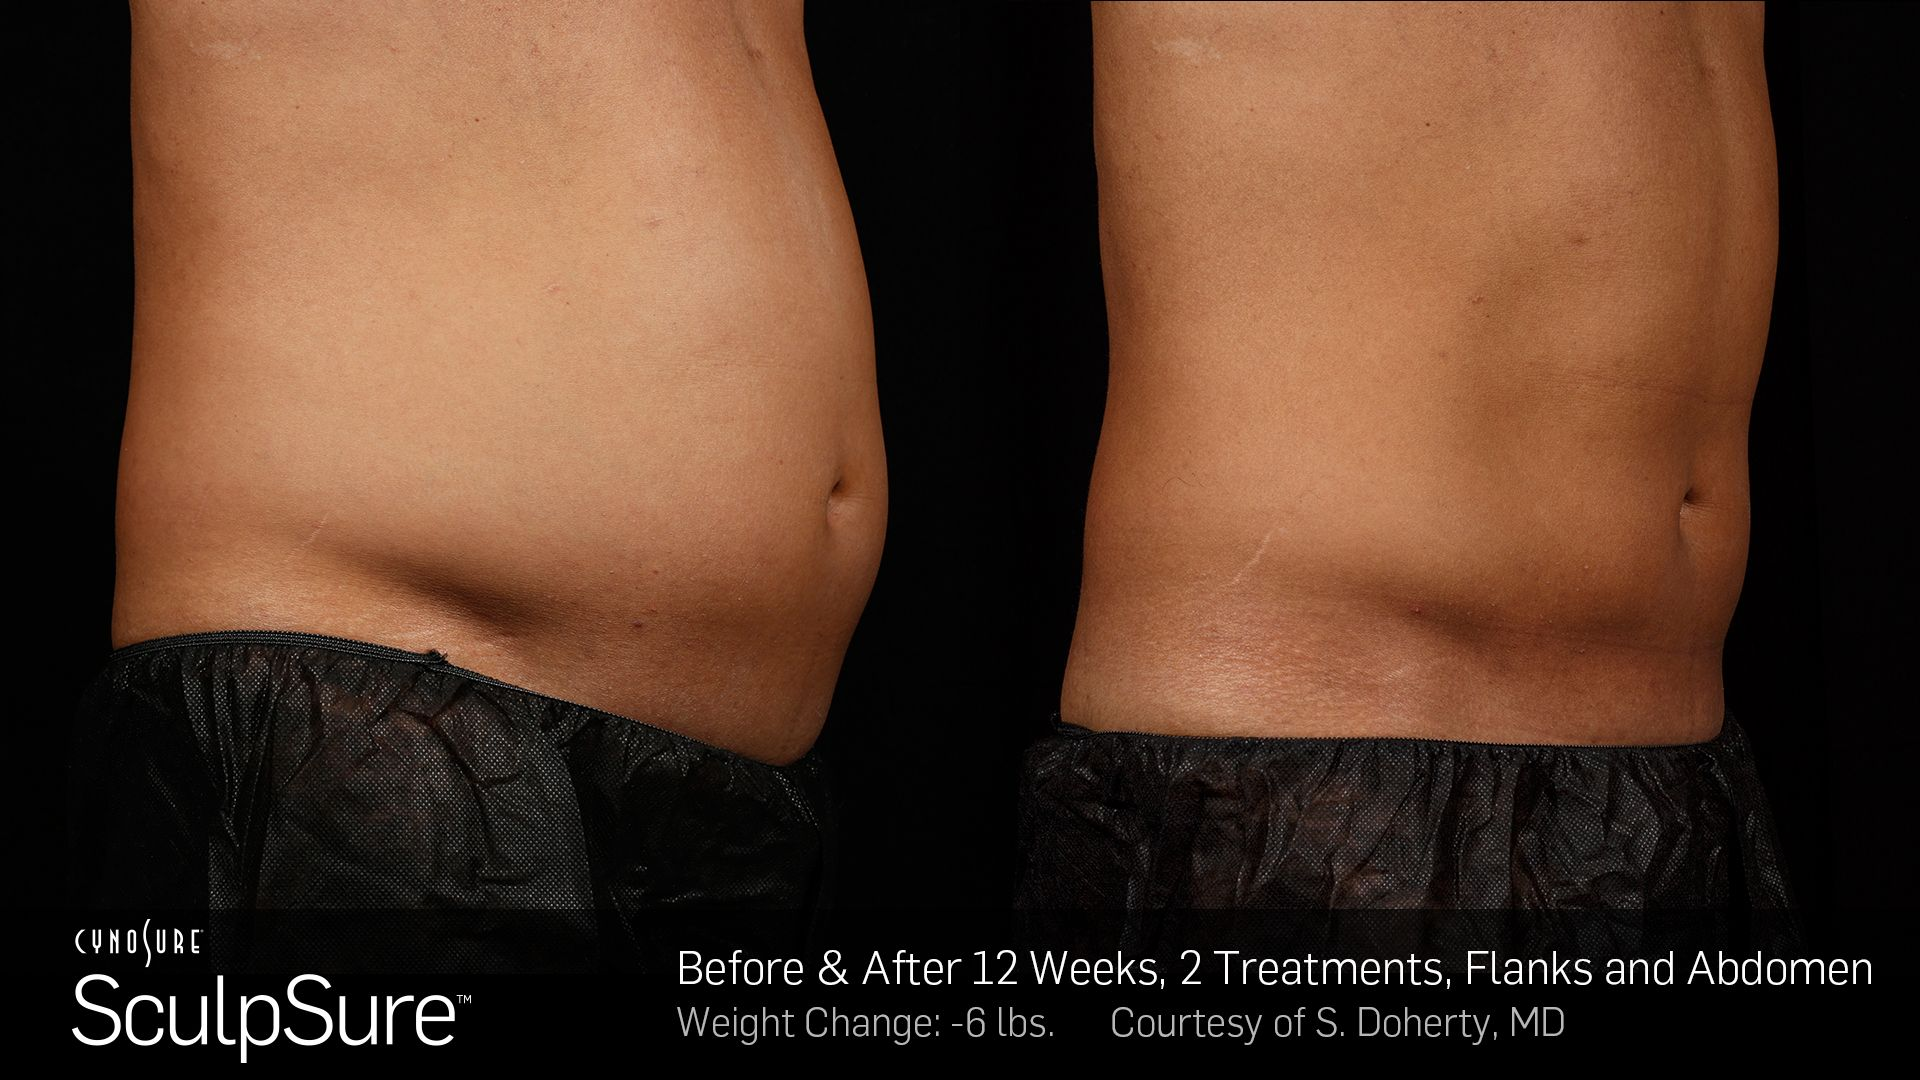 Before and After Photos 12 weeks, 2 Treatment, flanks and abdomen (patient 5, side view)